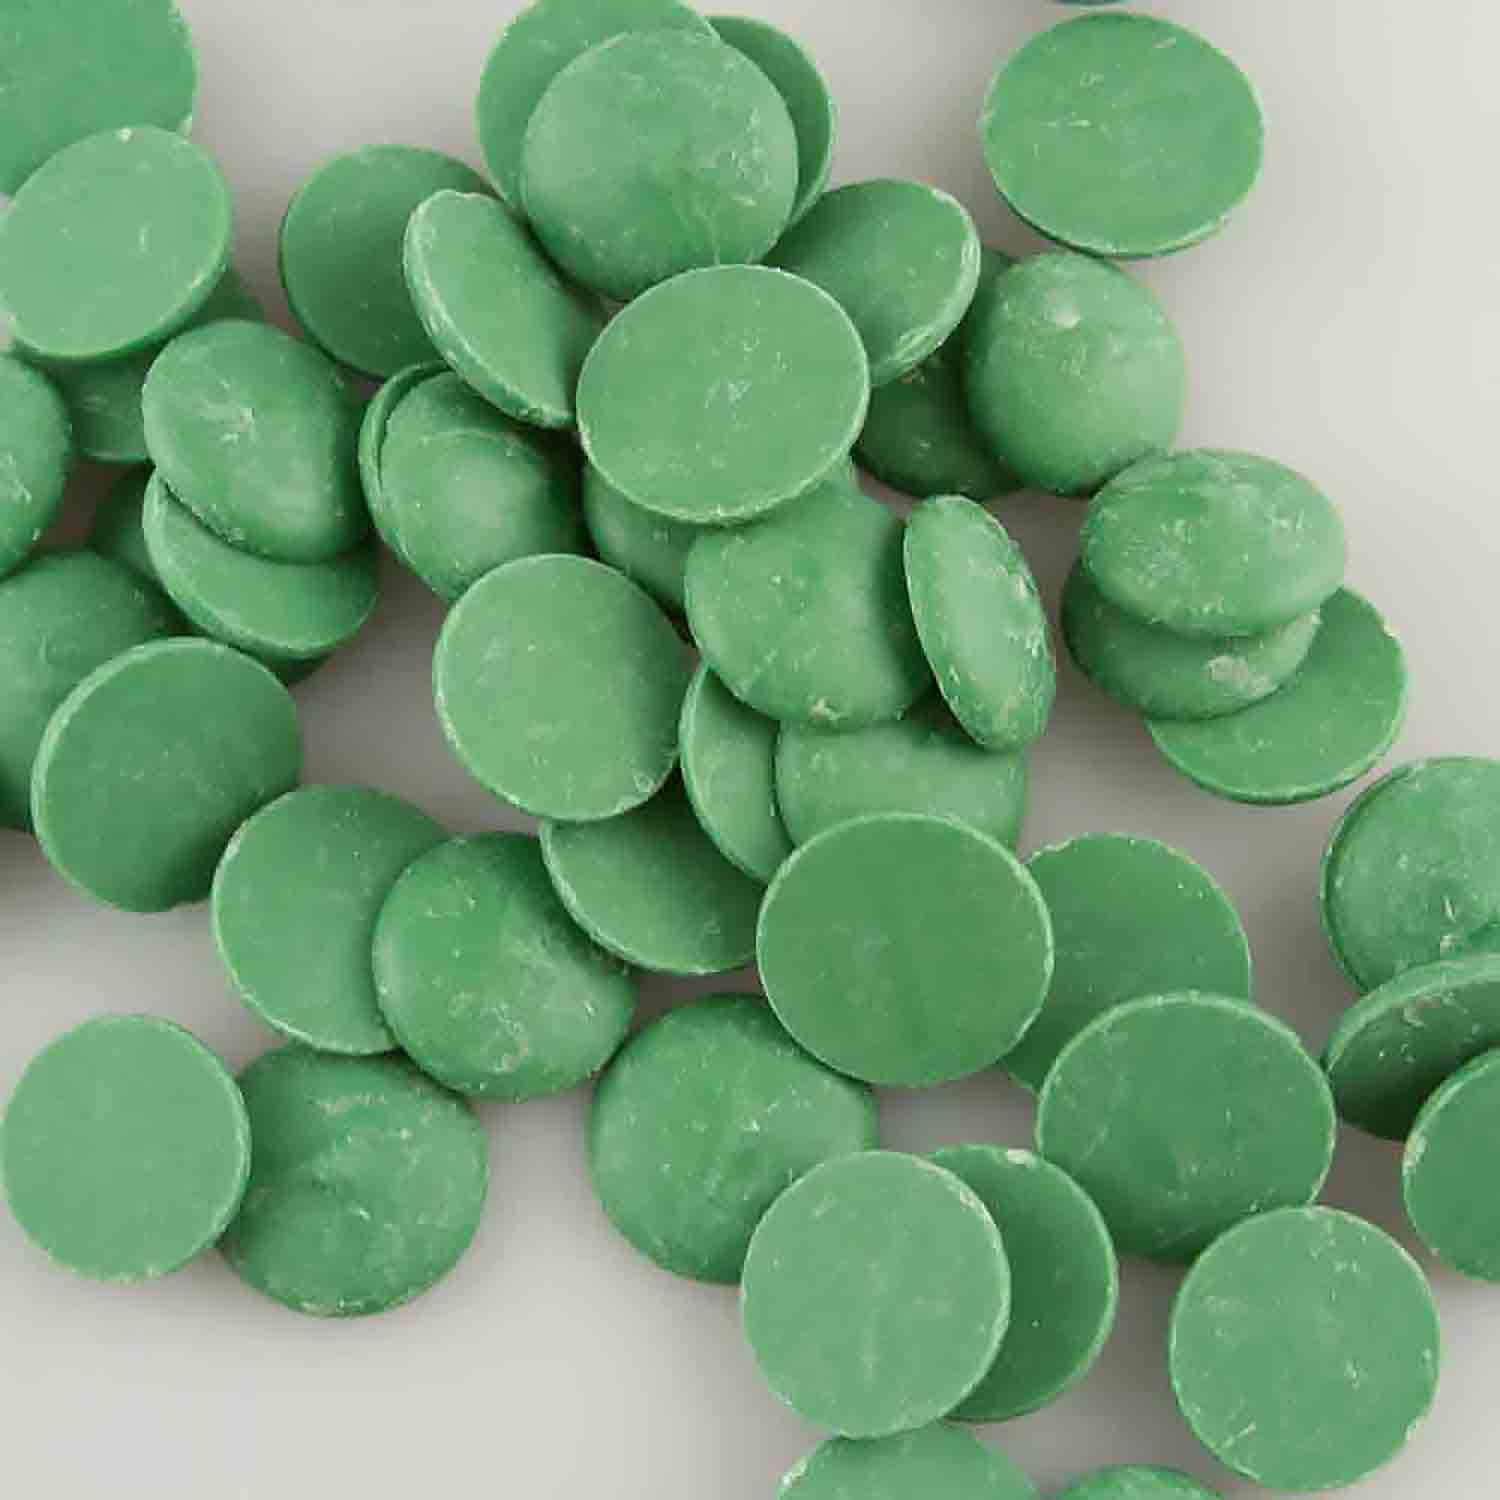 Merckens Garden Green Vanilla Flavored Candy Coating